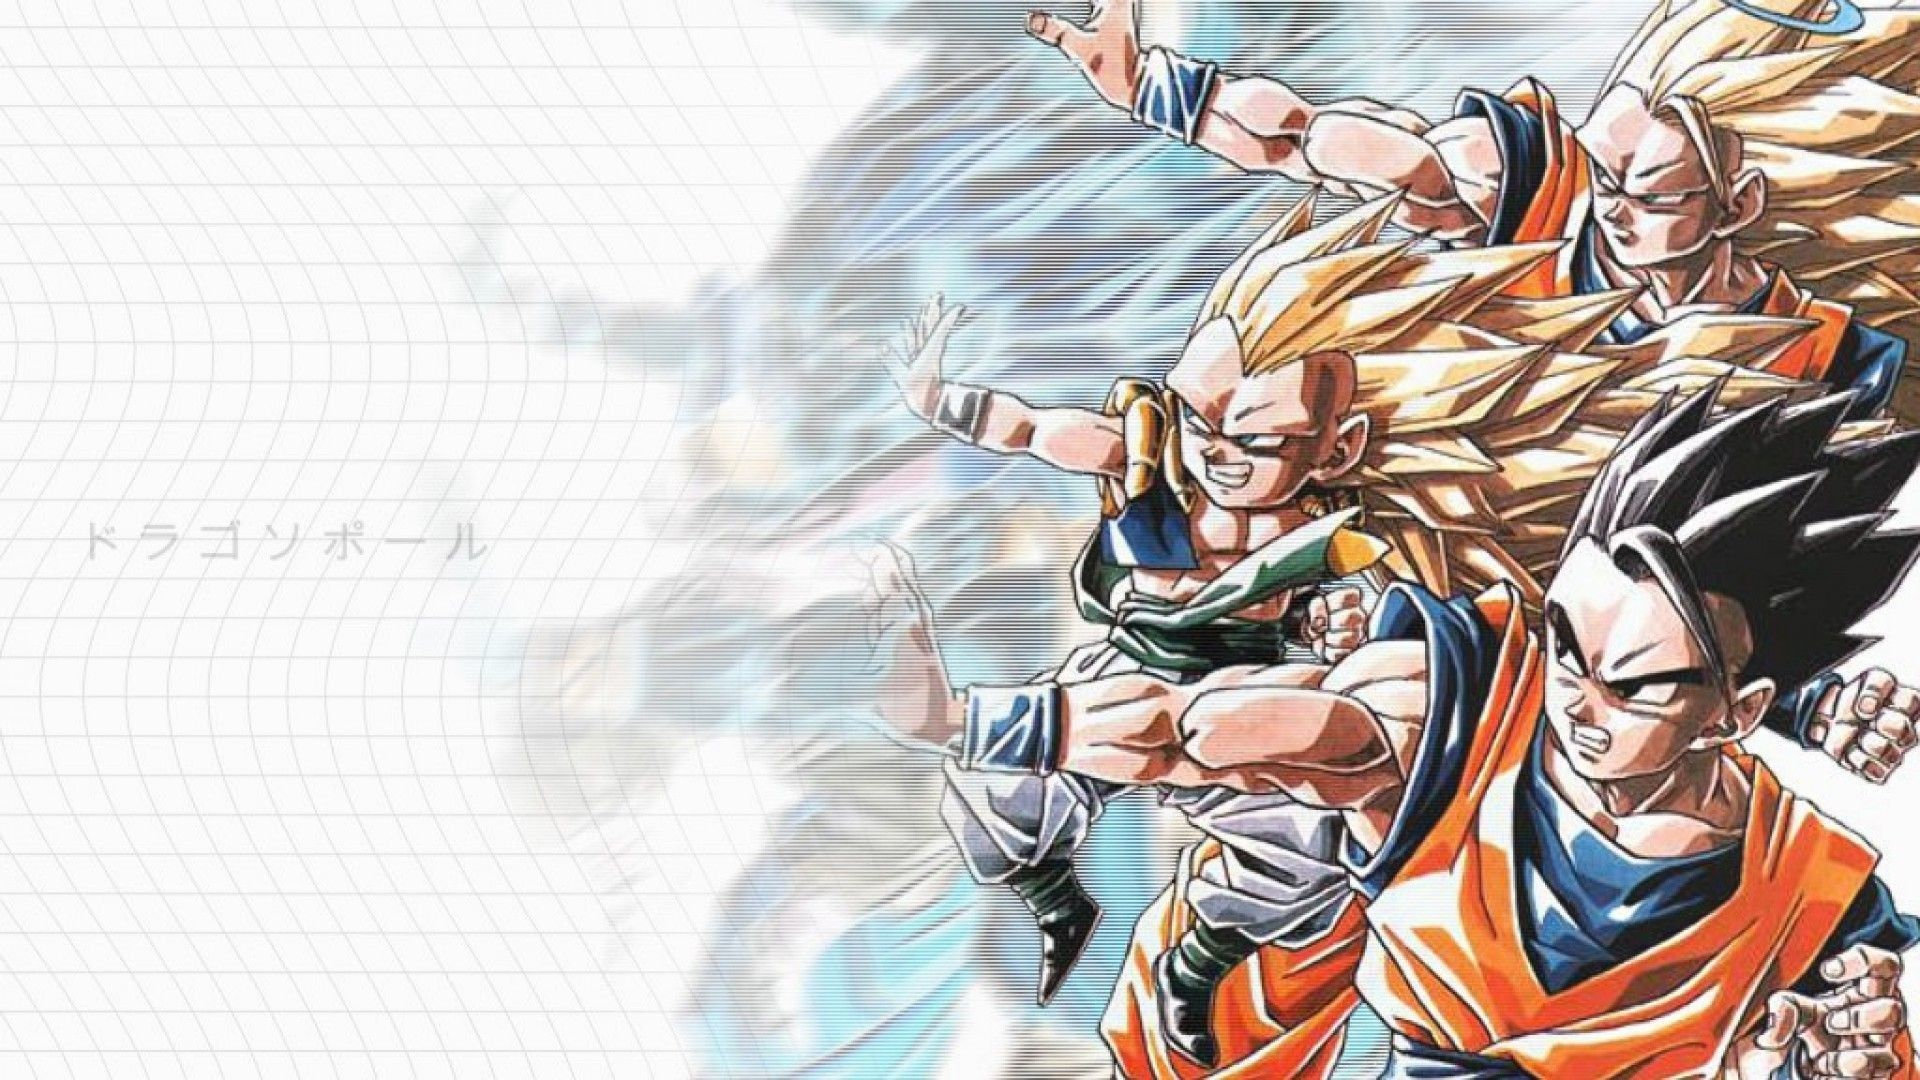 Anime games for android top 6 em 2020 dragon ball z